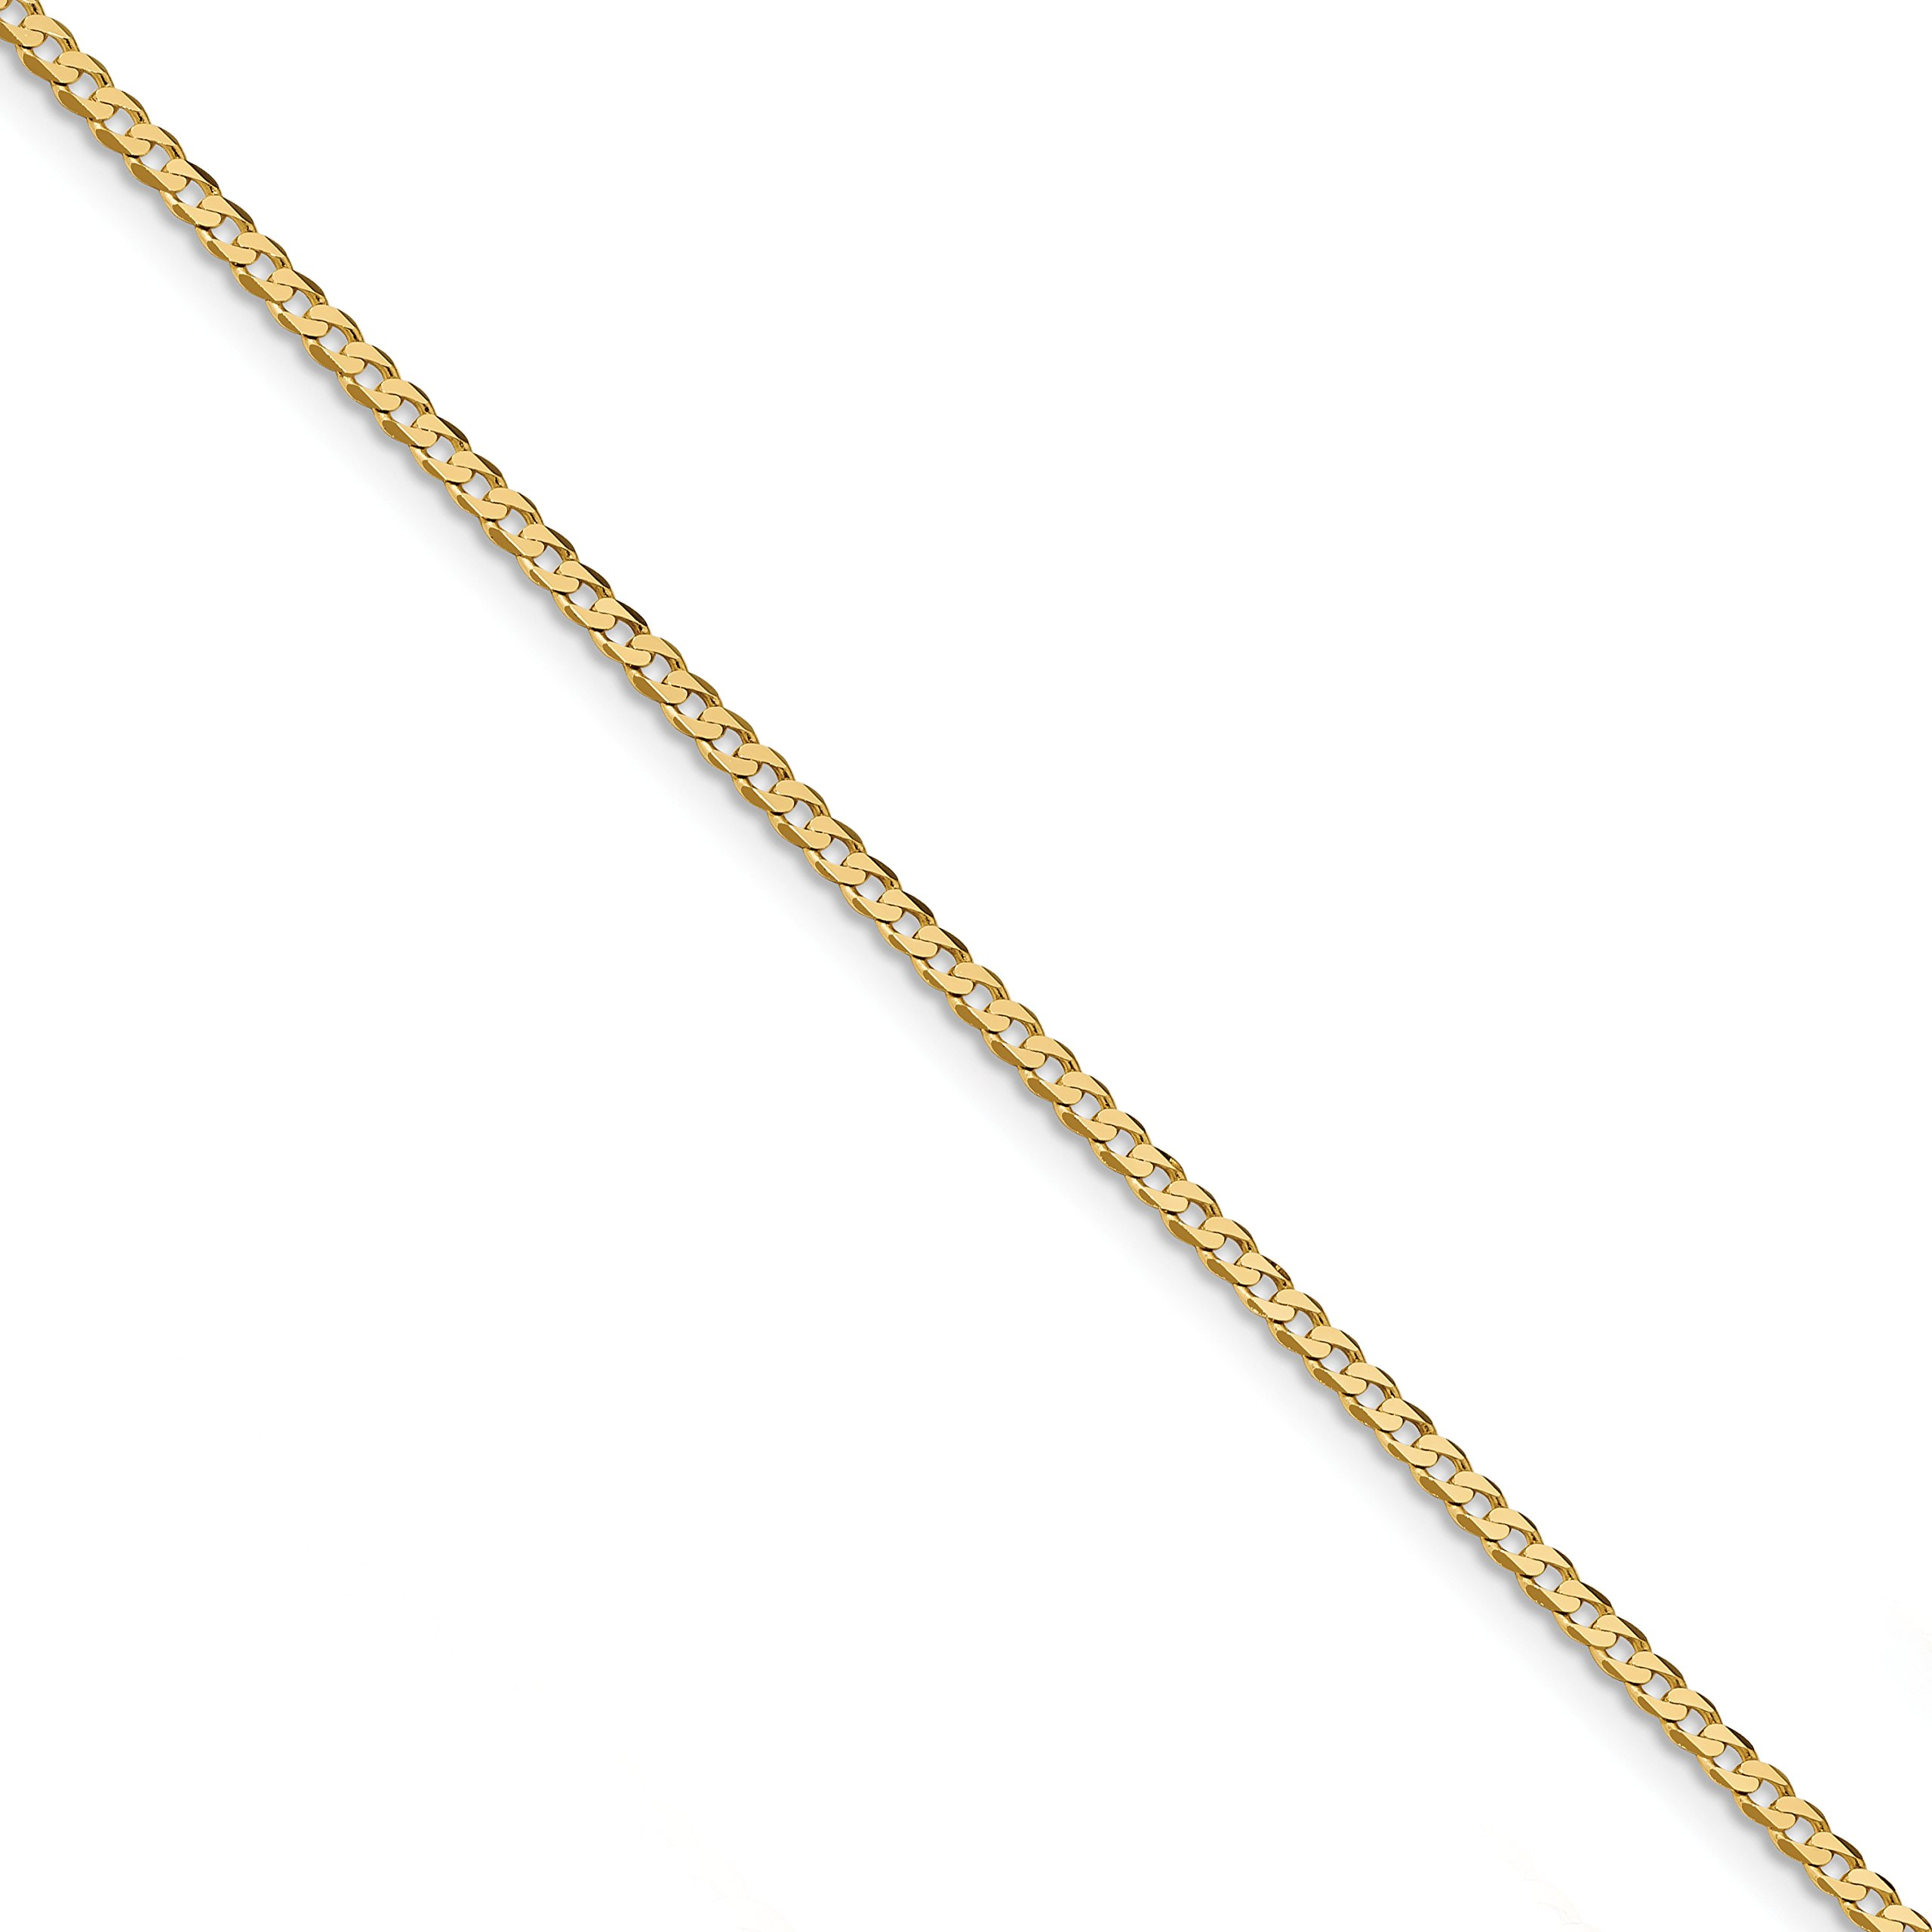 ICE CARATS 14k Yellow Gold 2.3mm Beveled Link Curb Bracelet Chain 8 Inch Rope Fine Jewelry Gift For Women Heart